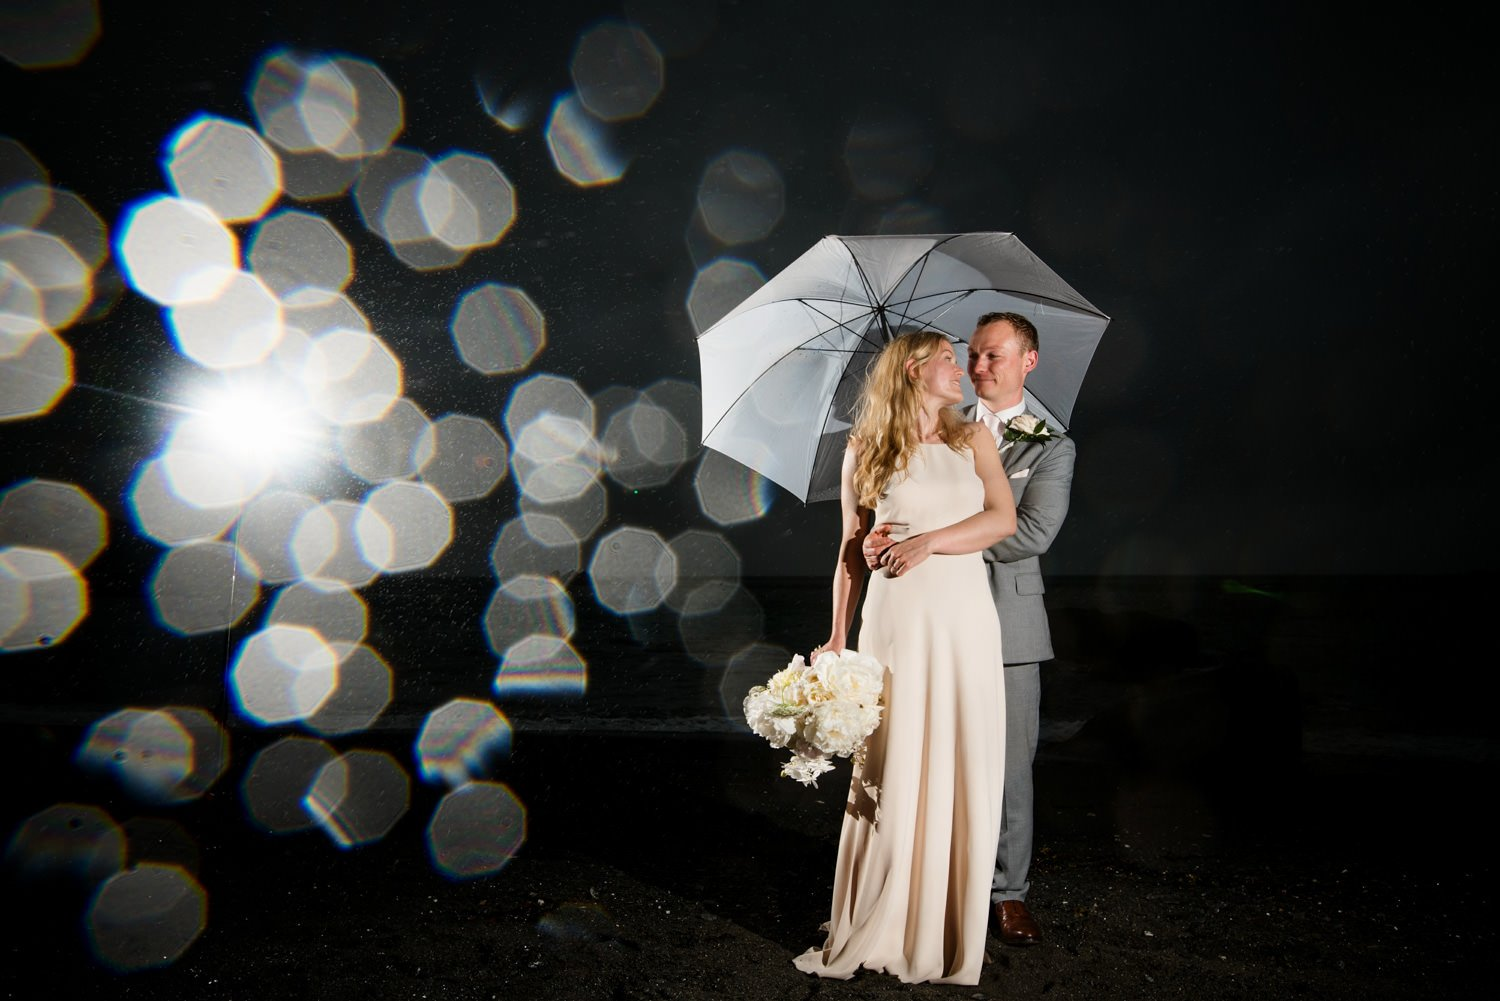 Creative rainy wedding portrait Devon Babb Photo